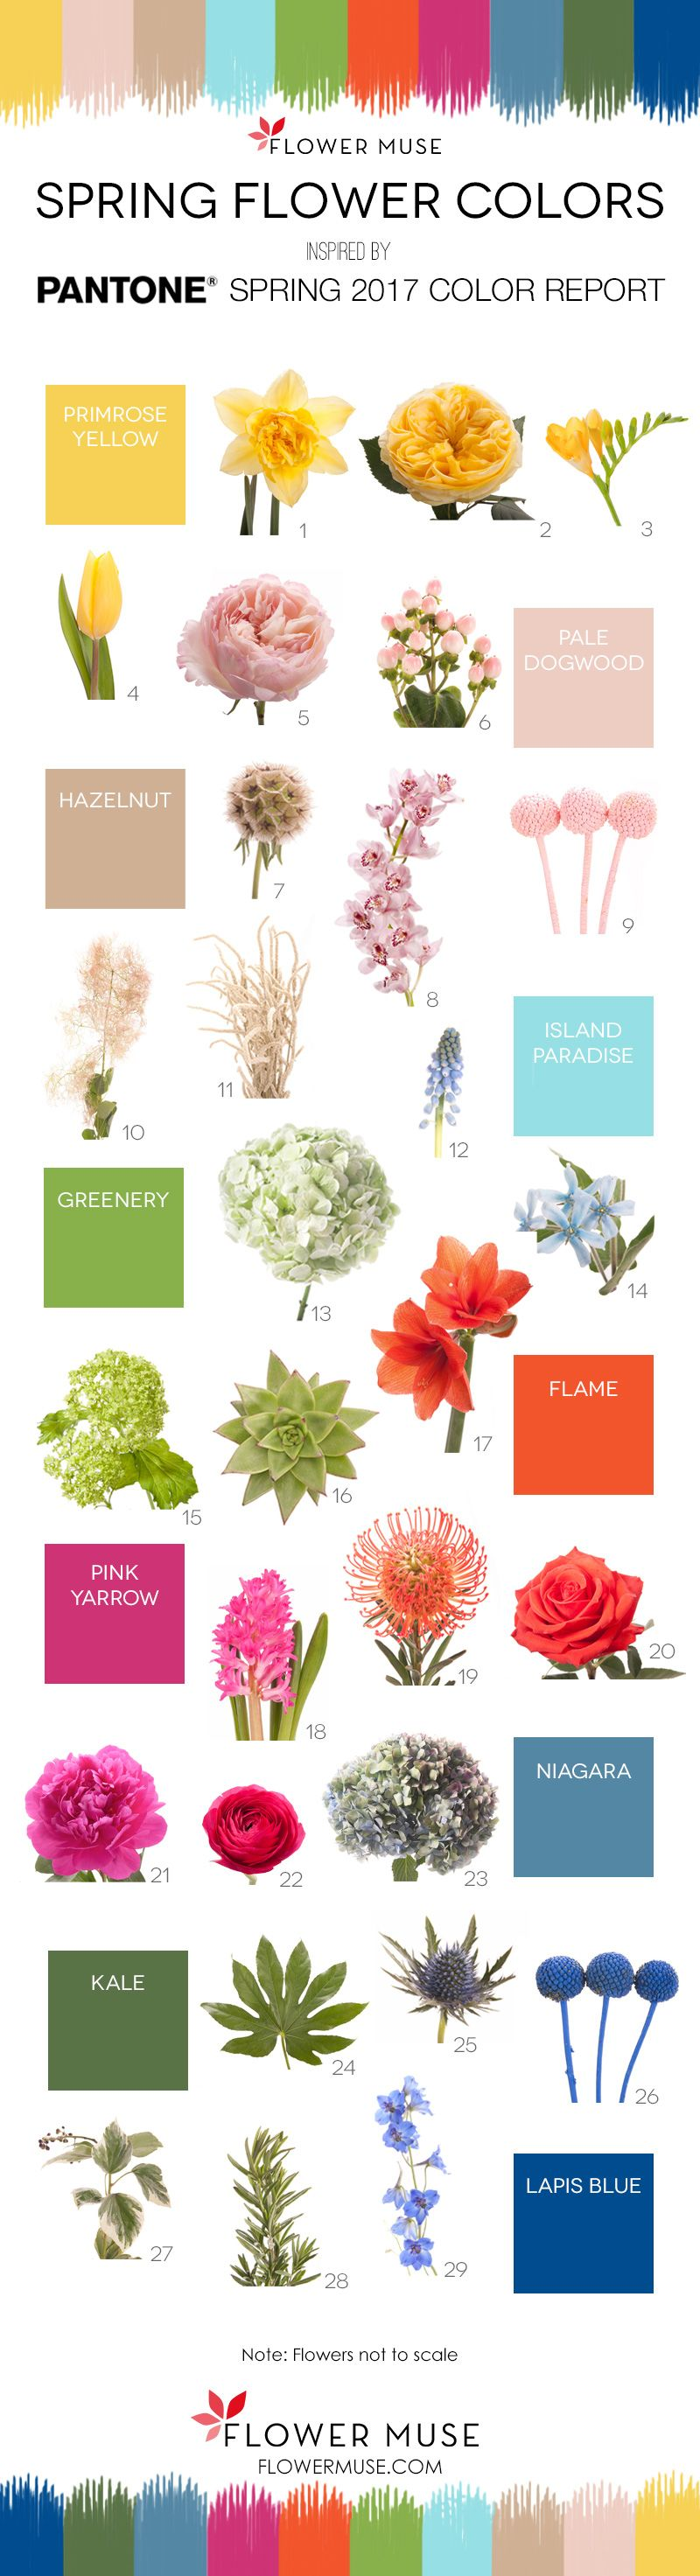 2017 spring flowers pantone inspiration spring colors spring spring flowers as inspired by pantones 2017 spring color report on flower muse blog mightylinksfo